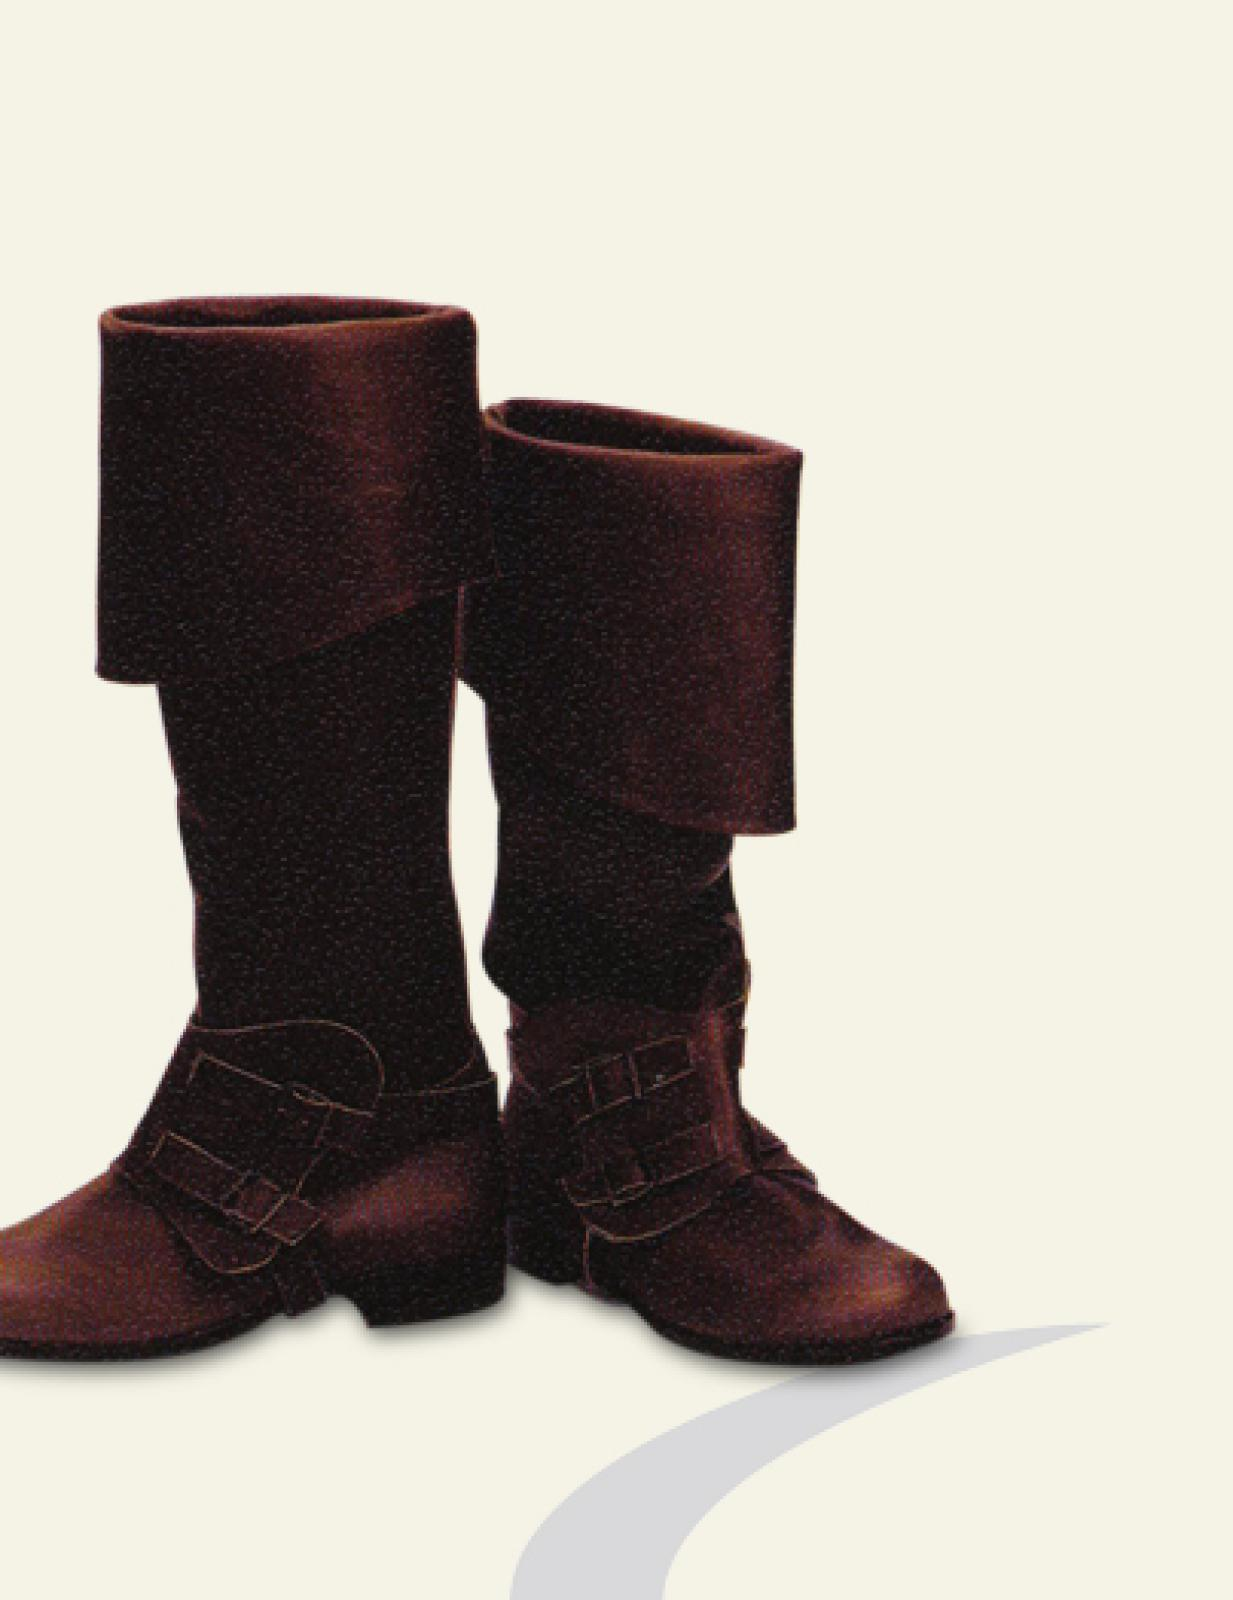 Marlborough-Stiefel